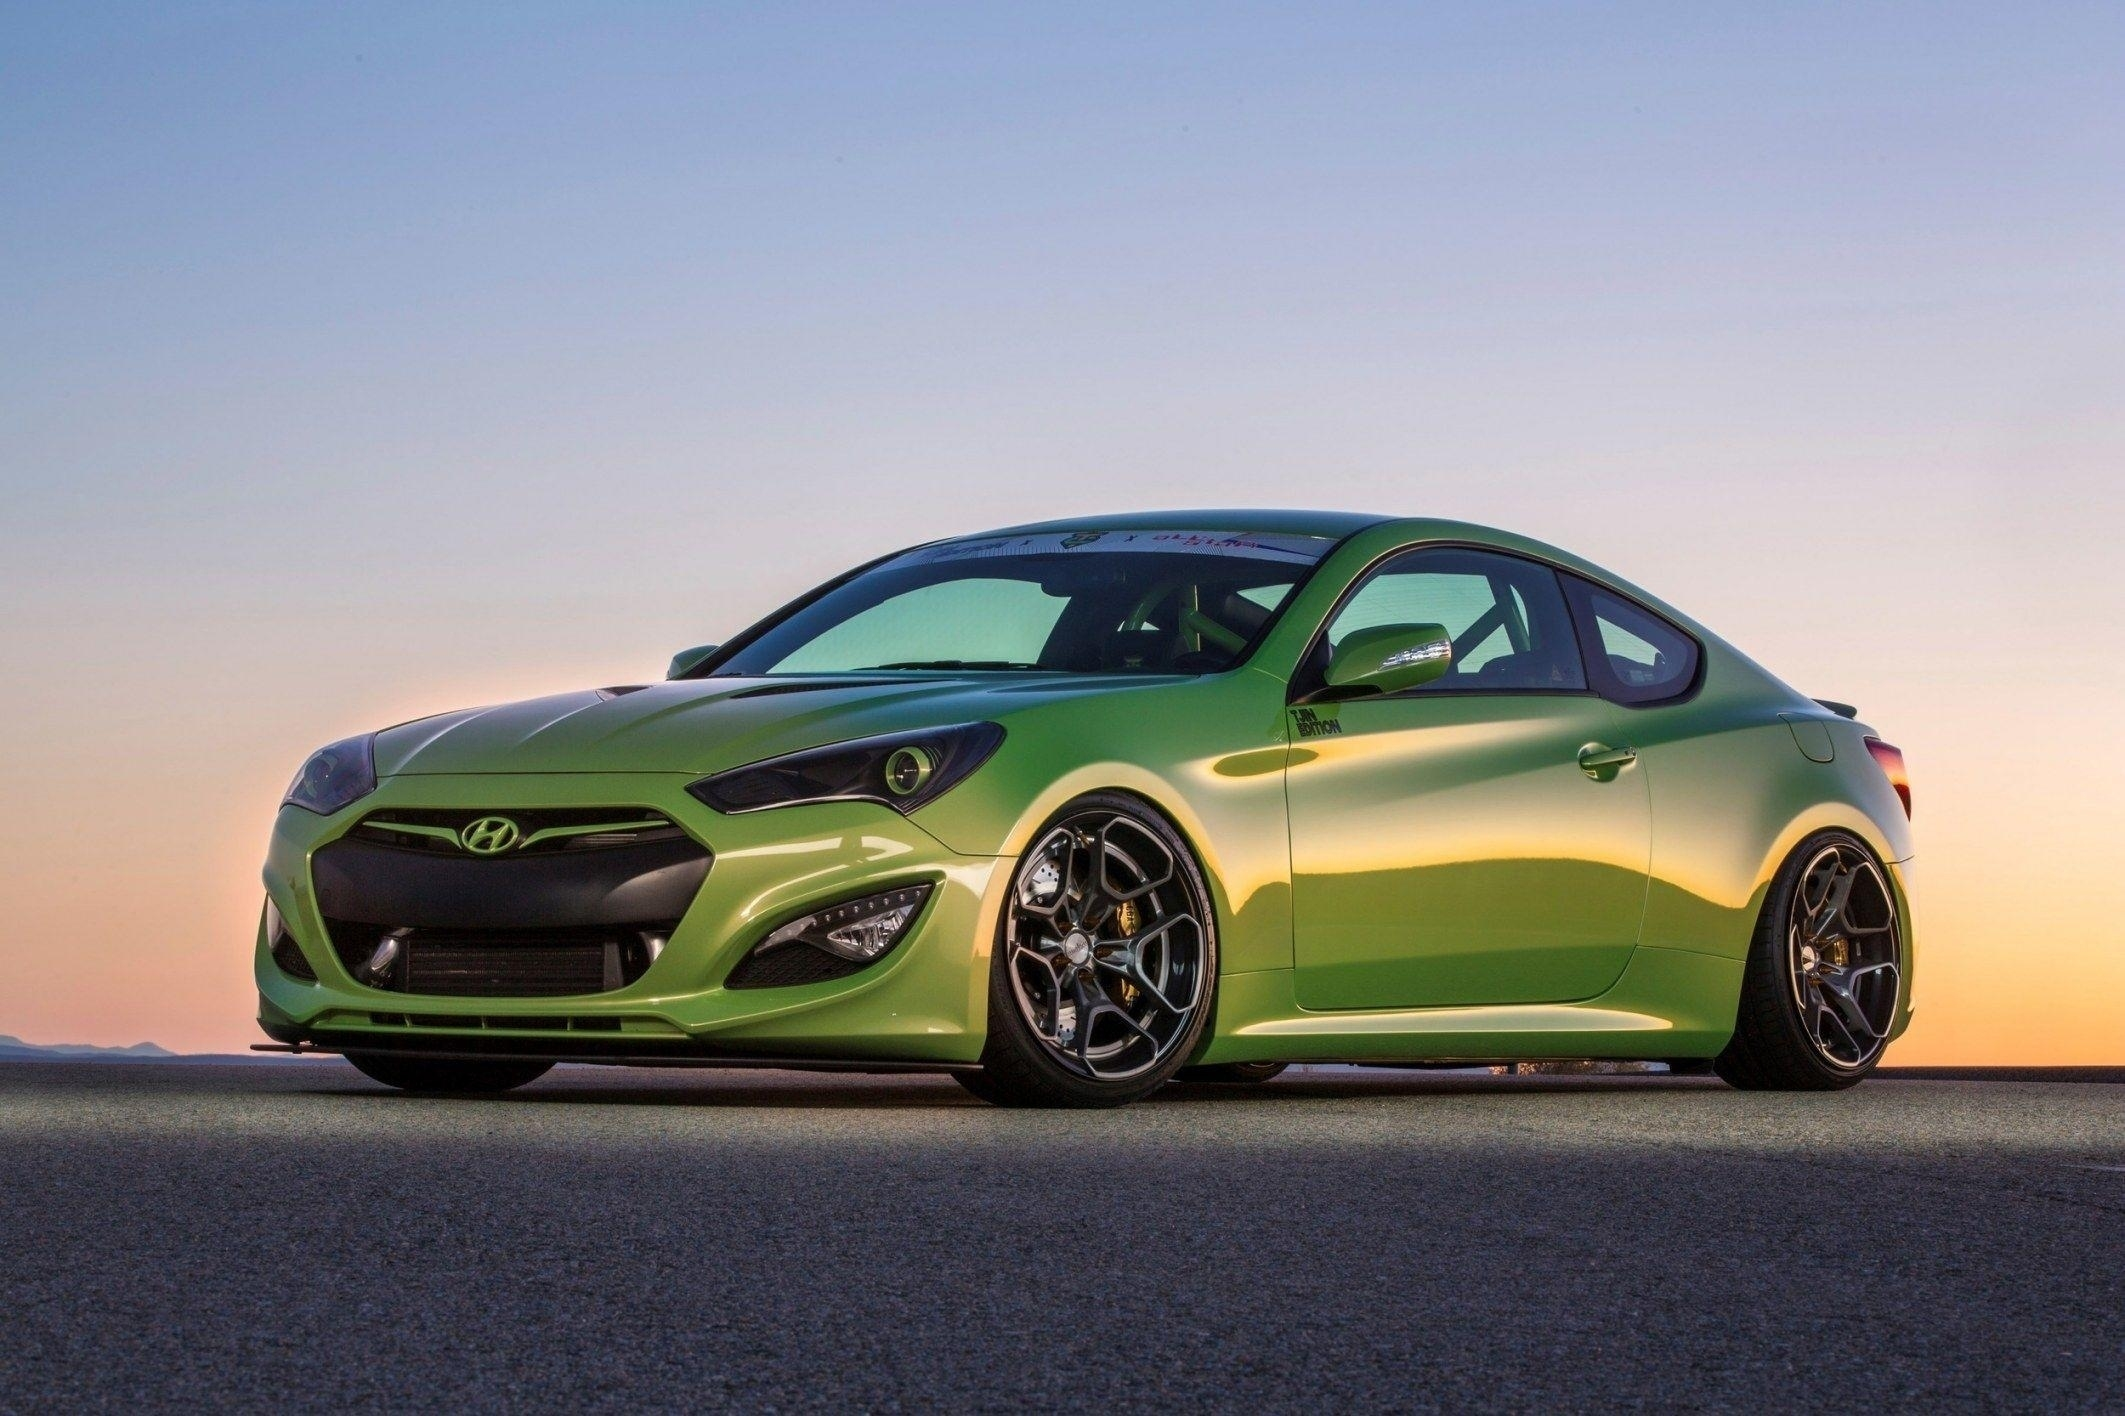 65 The 2019 Hyundai Genesis Coupe First Drive